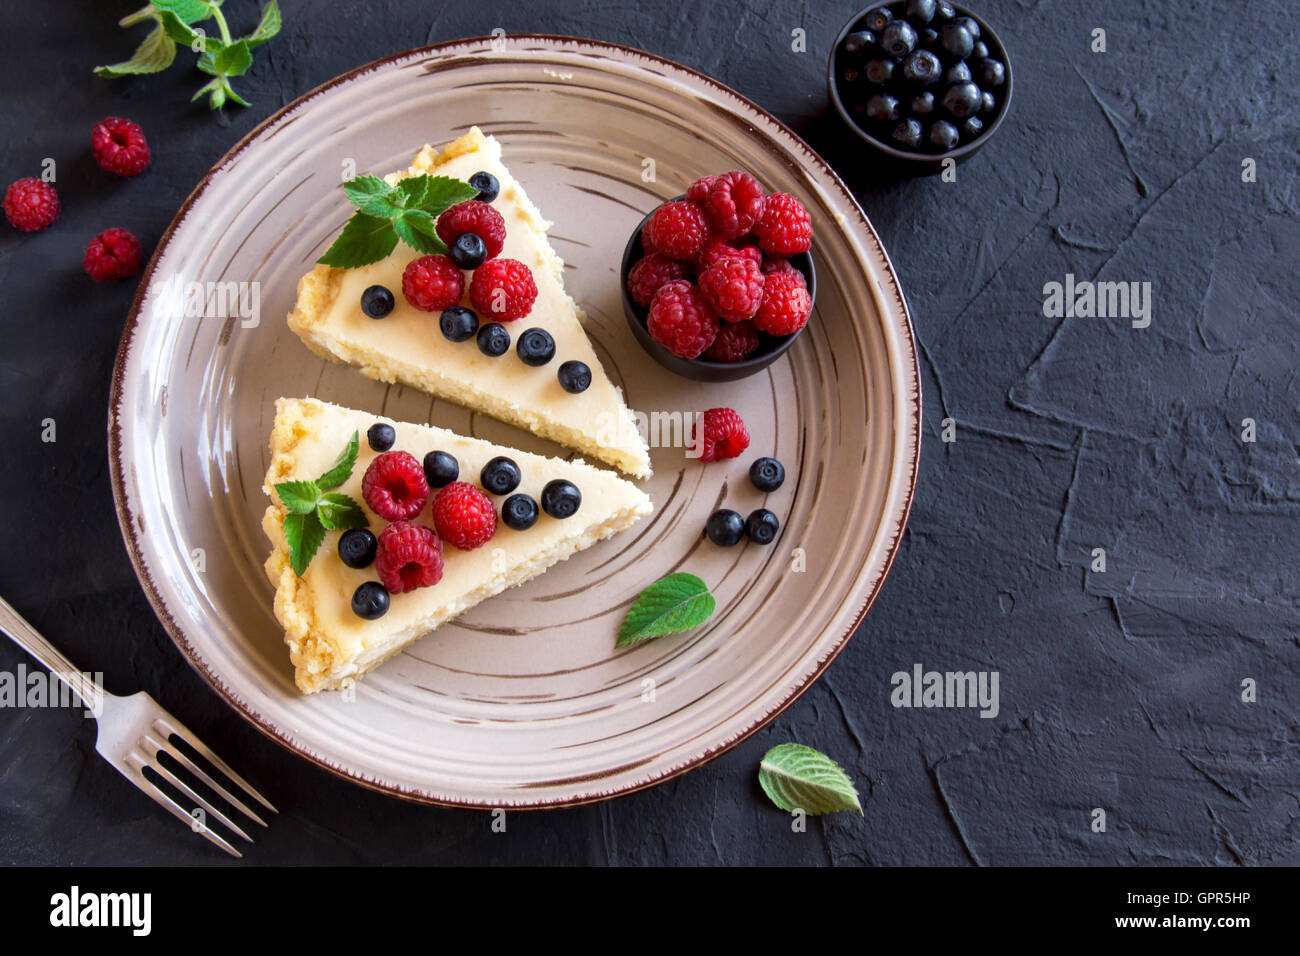 Homemade cheesecake with fresh berries and mint for dessert - Stock Image